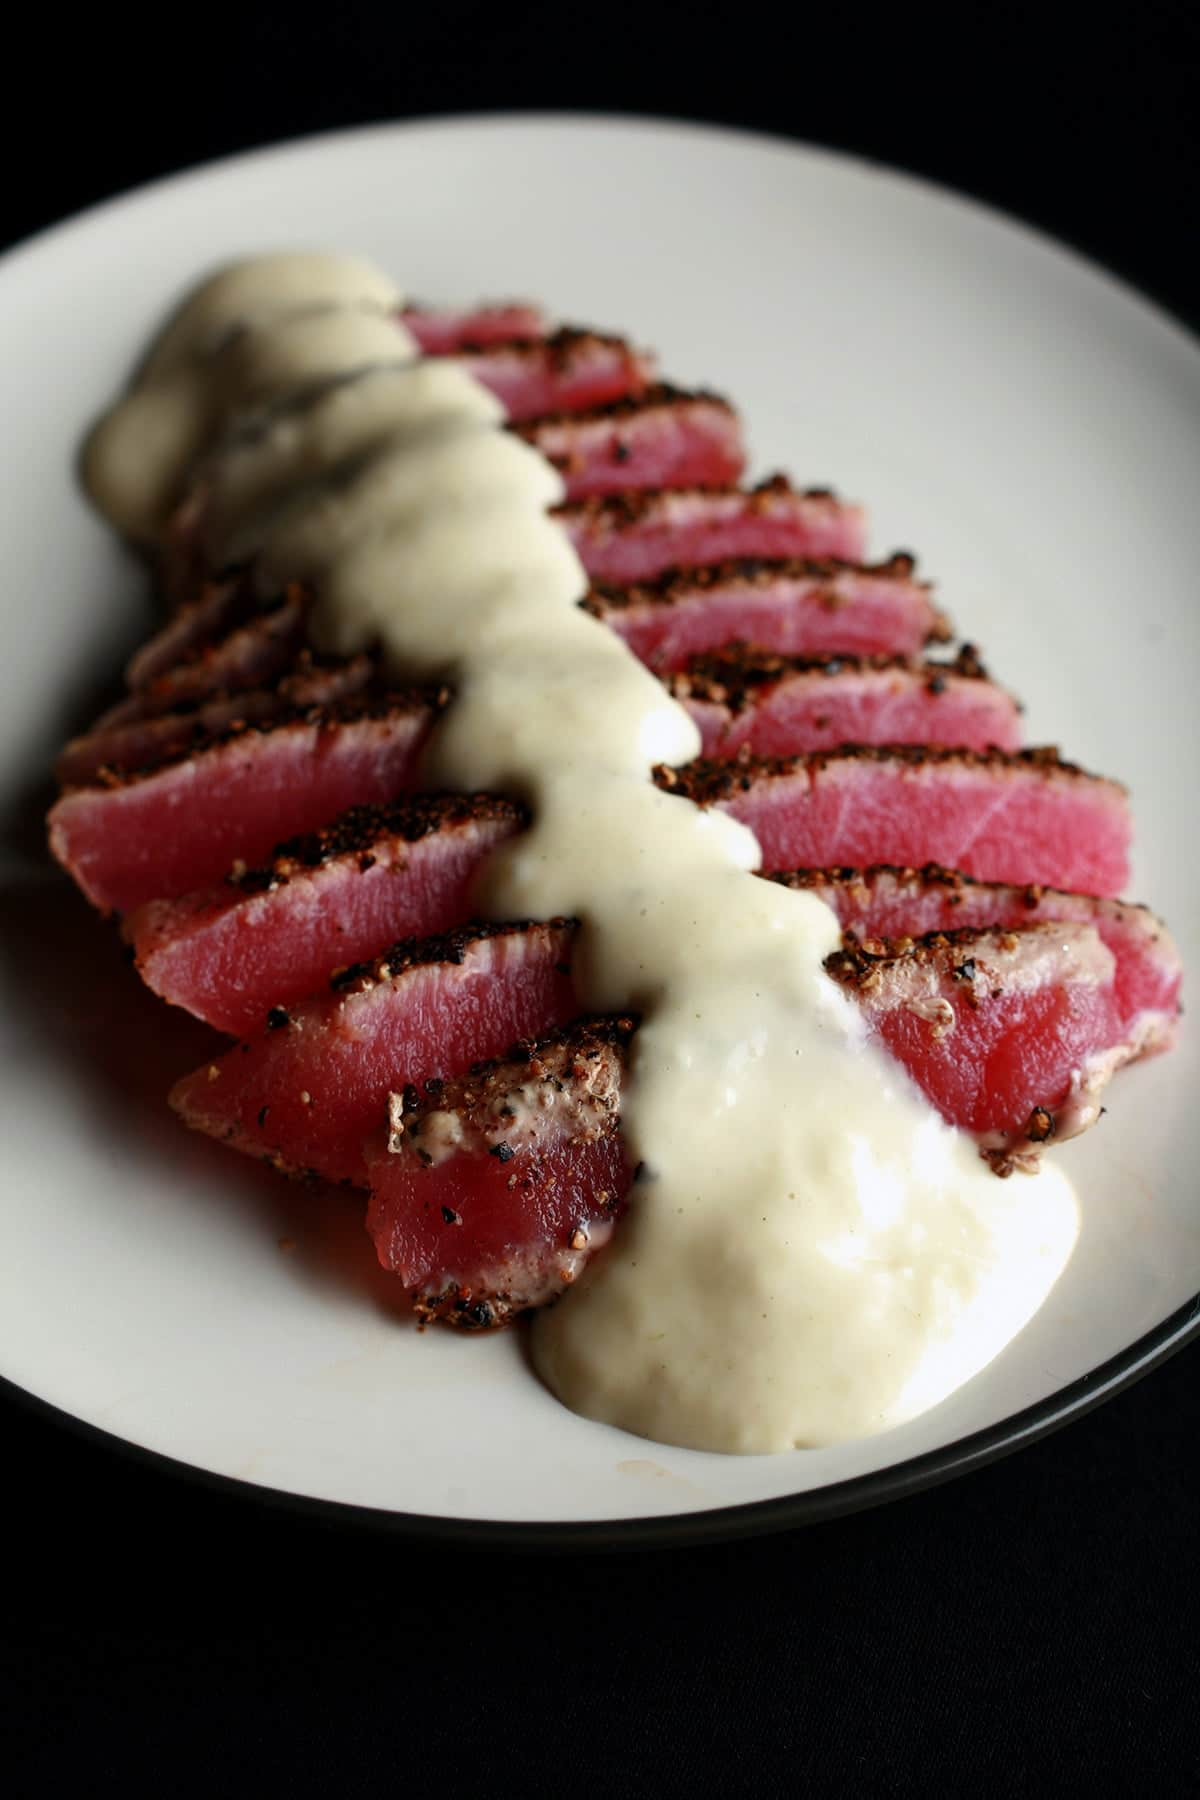 A pepper crusted tuna steak - rare - that has been sliced up, fanned out on a small white plate, and drizzled with wasabi cream sauce.